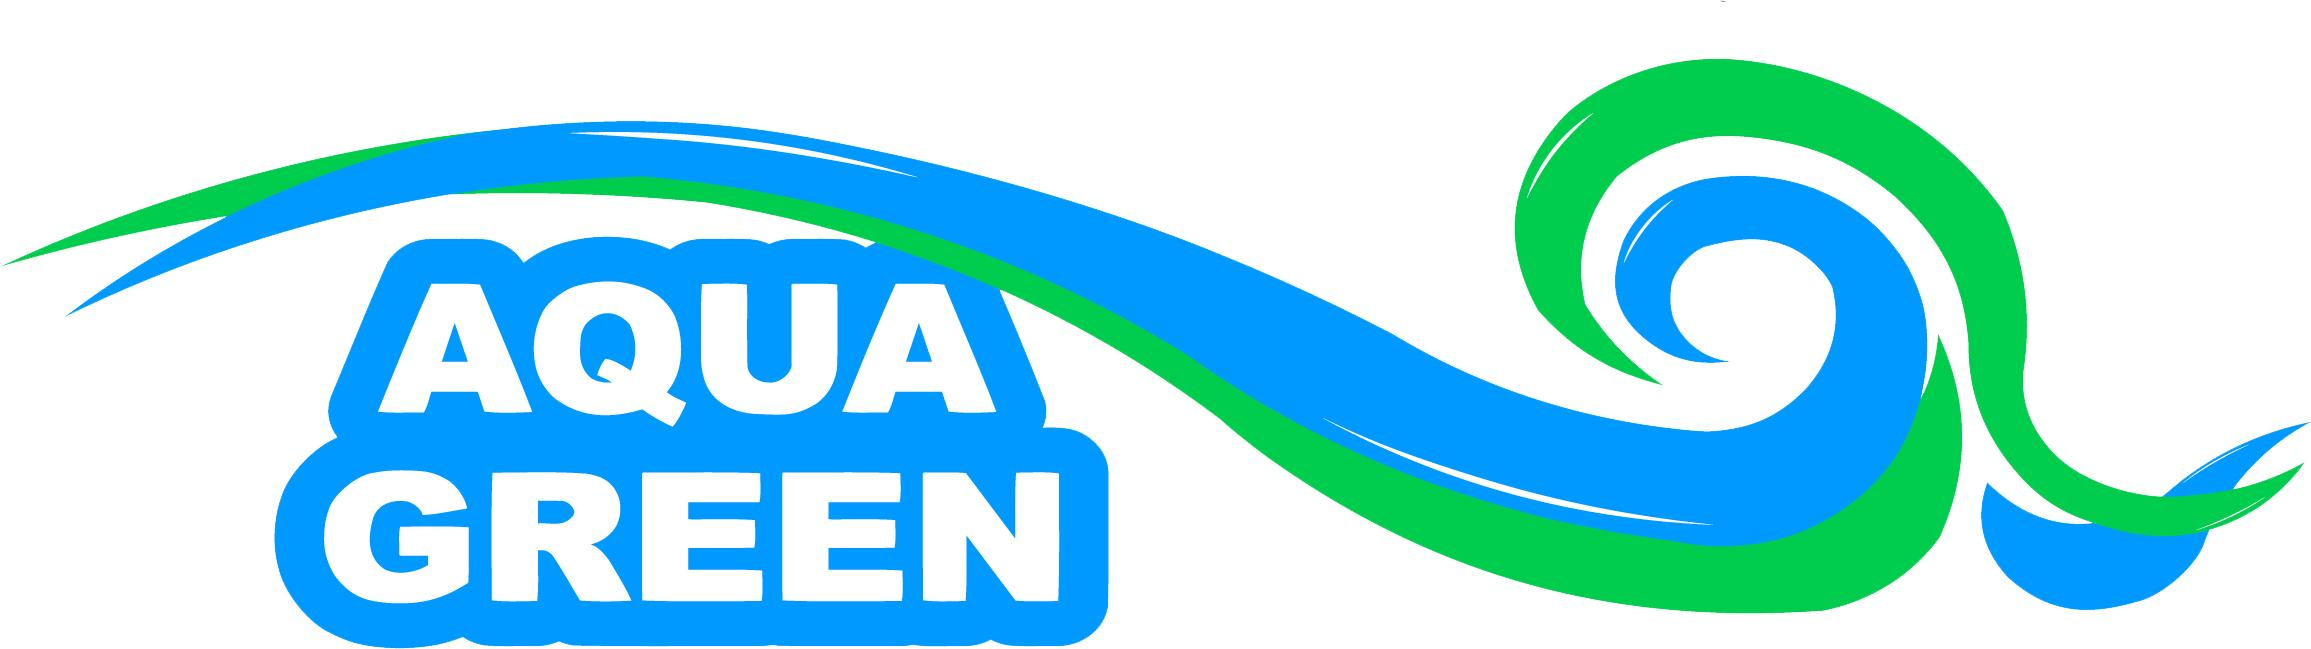 aquagreen logo_1_24